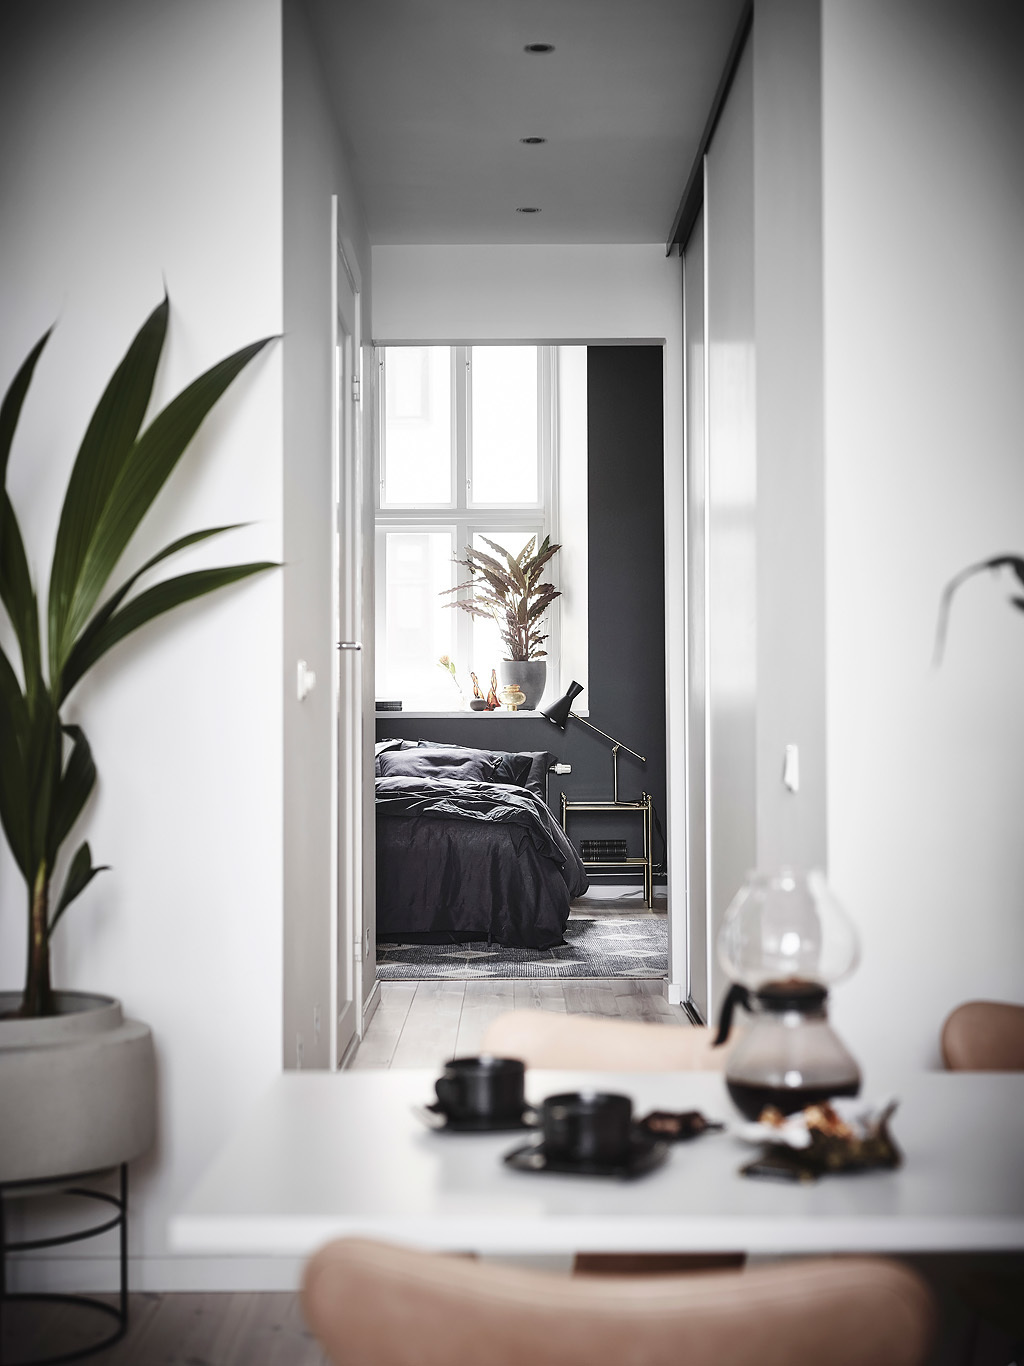 Exposed brick and black bedroom walls - COCO LAPINE DESIGNCOCO ...